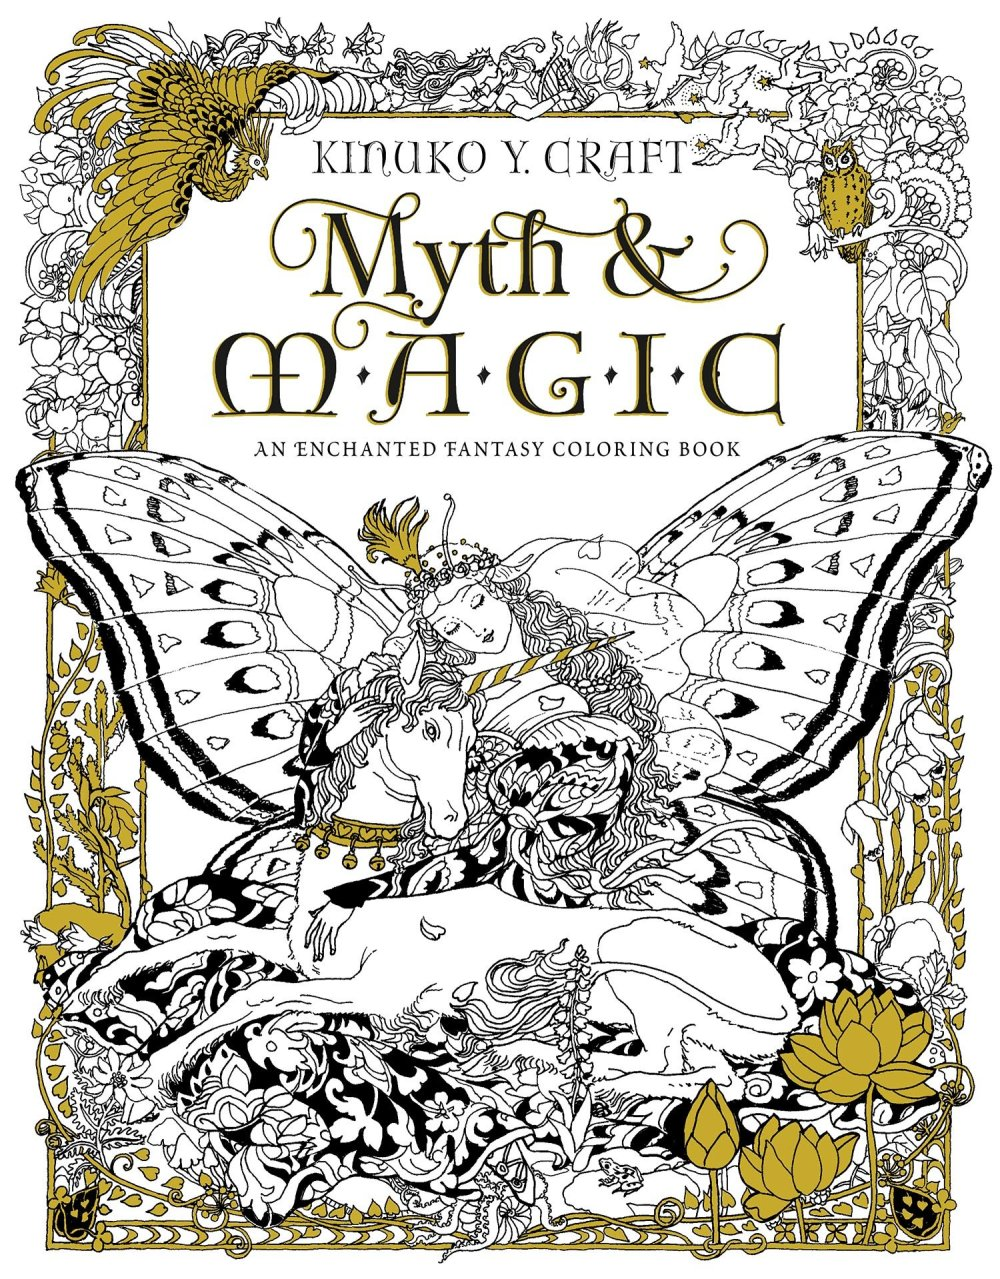 Myth Magic An Enchanted Fantasy Coloring Book By Kinuko Y Craft